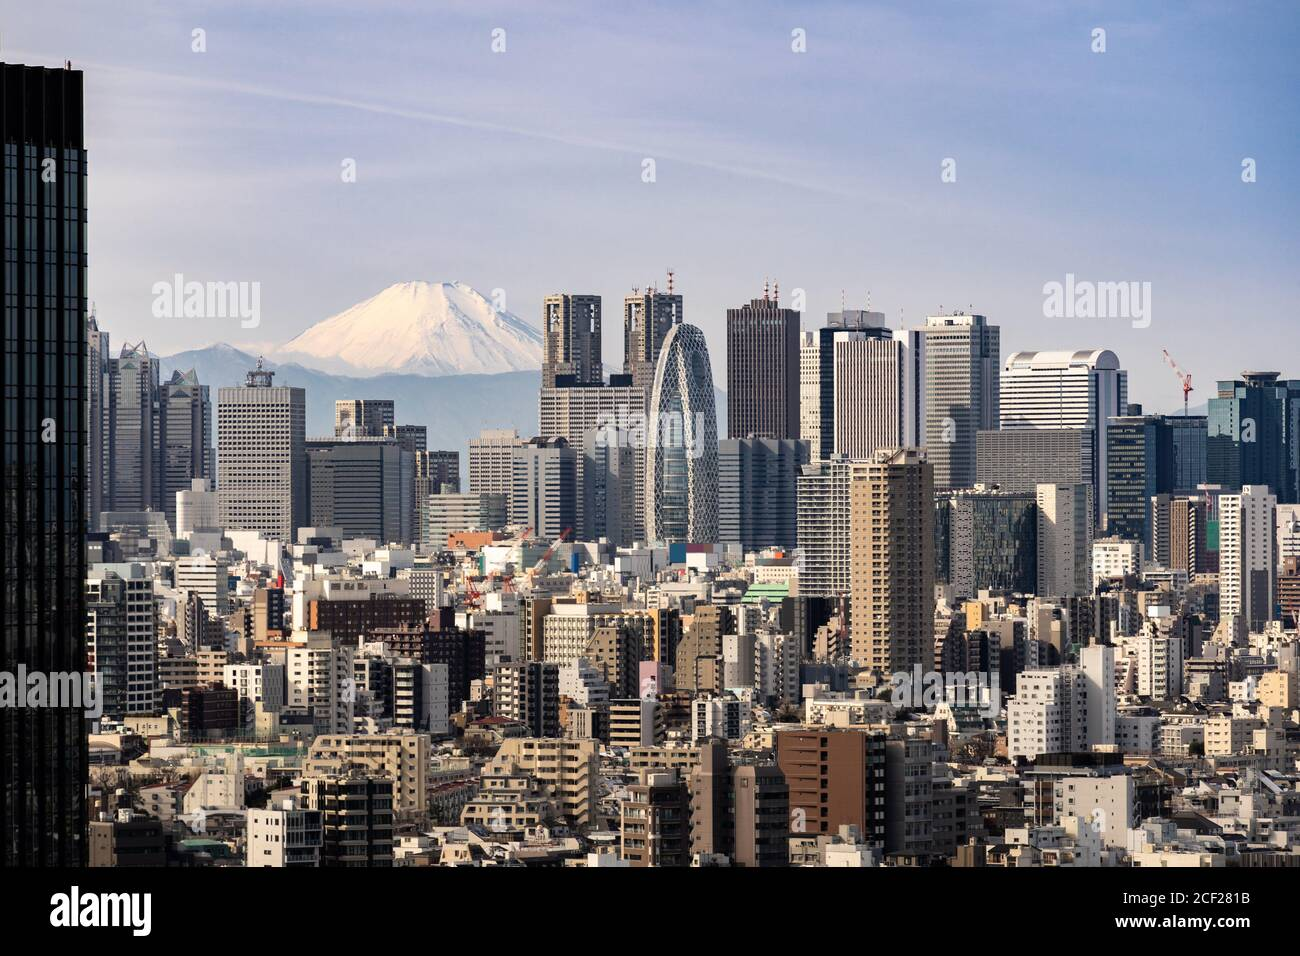 Mountain Fuji with Tokyo skylines and skyscrapers buildings in Shinjuku ward in Tokyo. Taken from Tokyo Bunkyo civic center observatory sky desk. Stock Photo